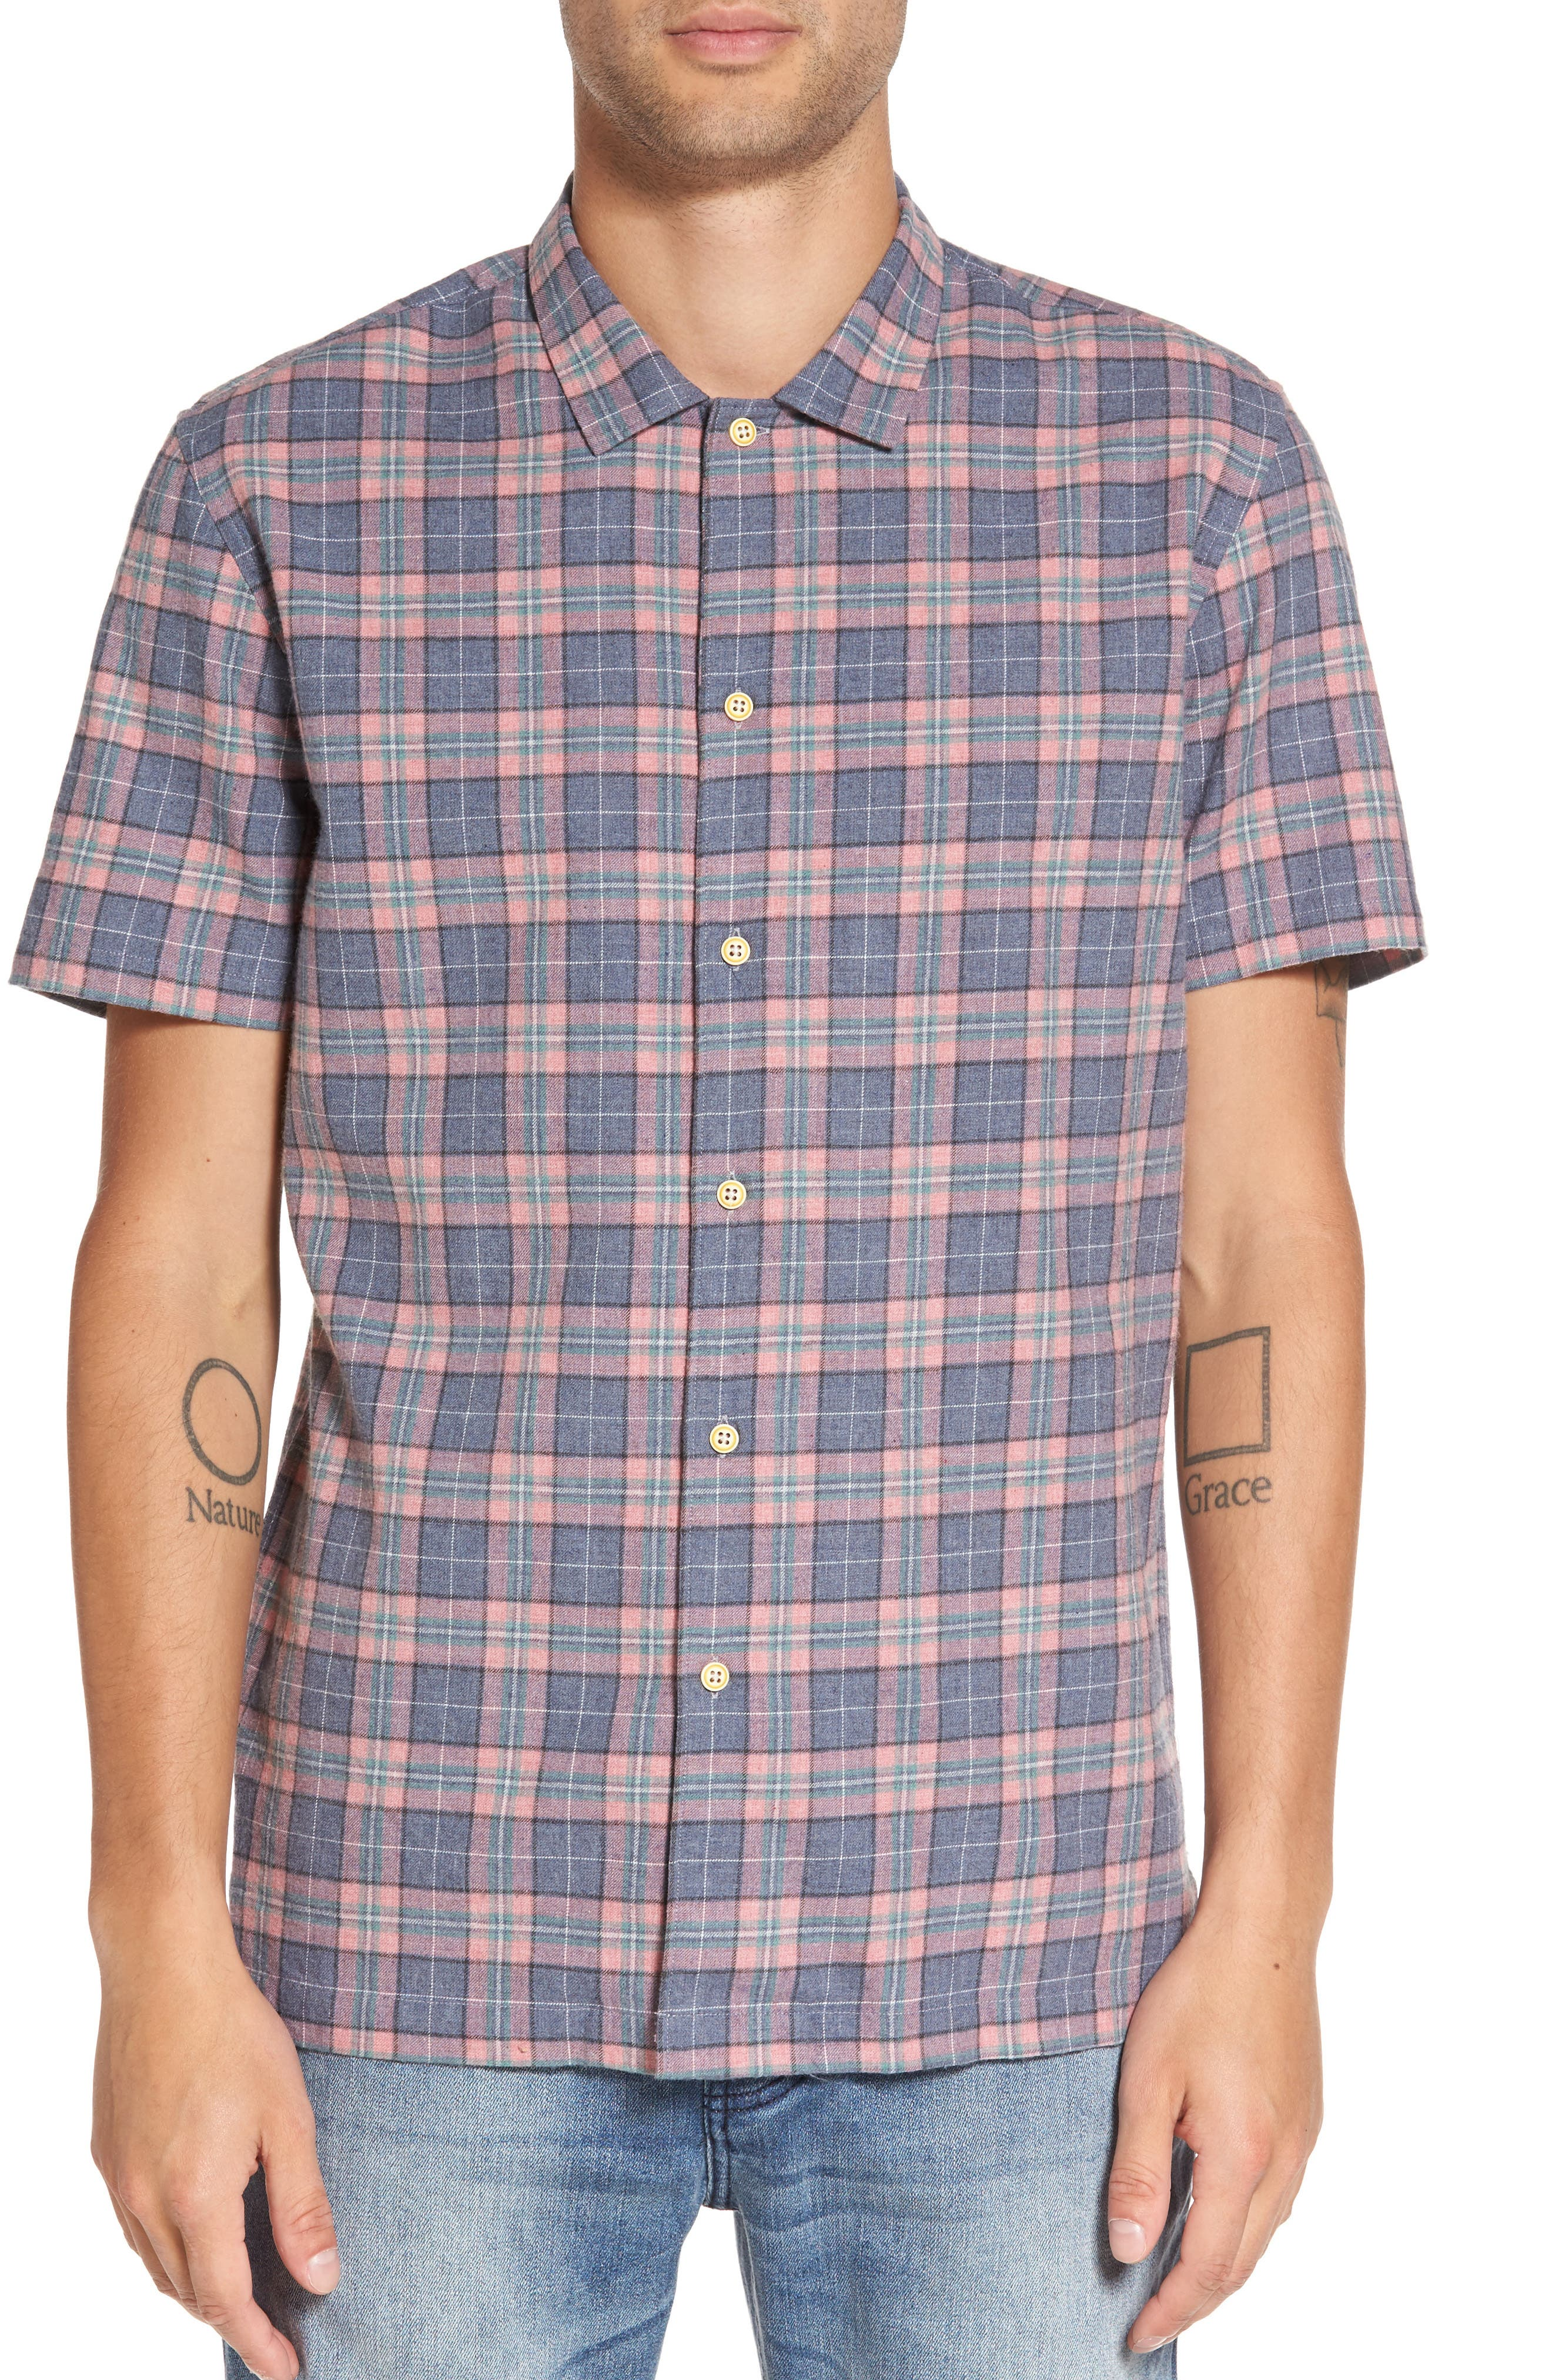 Florida Short Sleeve Plaid Shirt,                             Main thumbnail 1, color,                             450